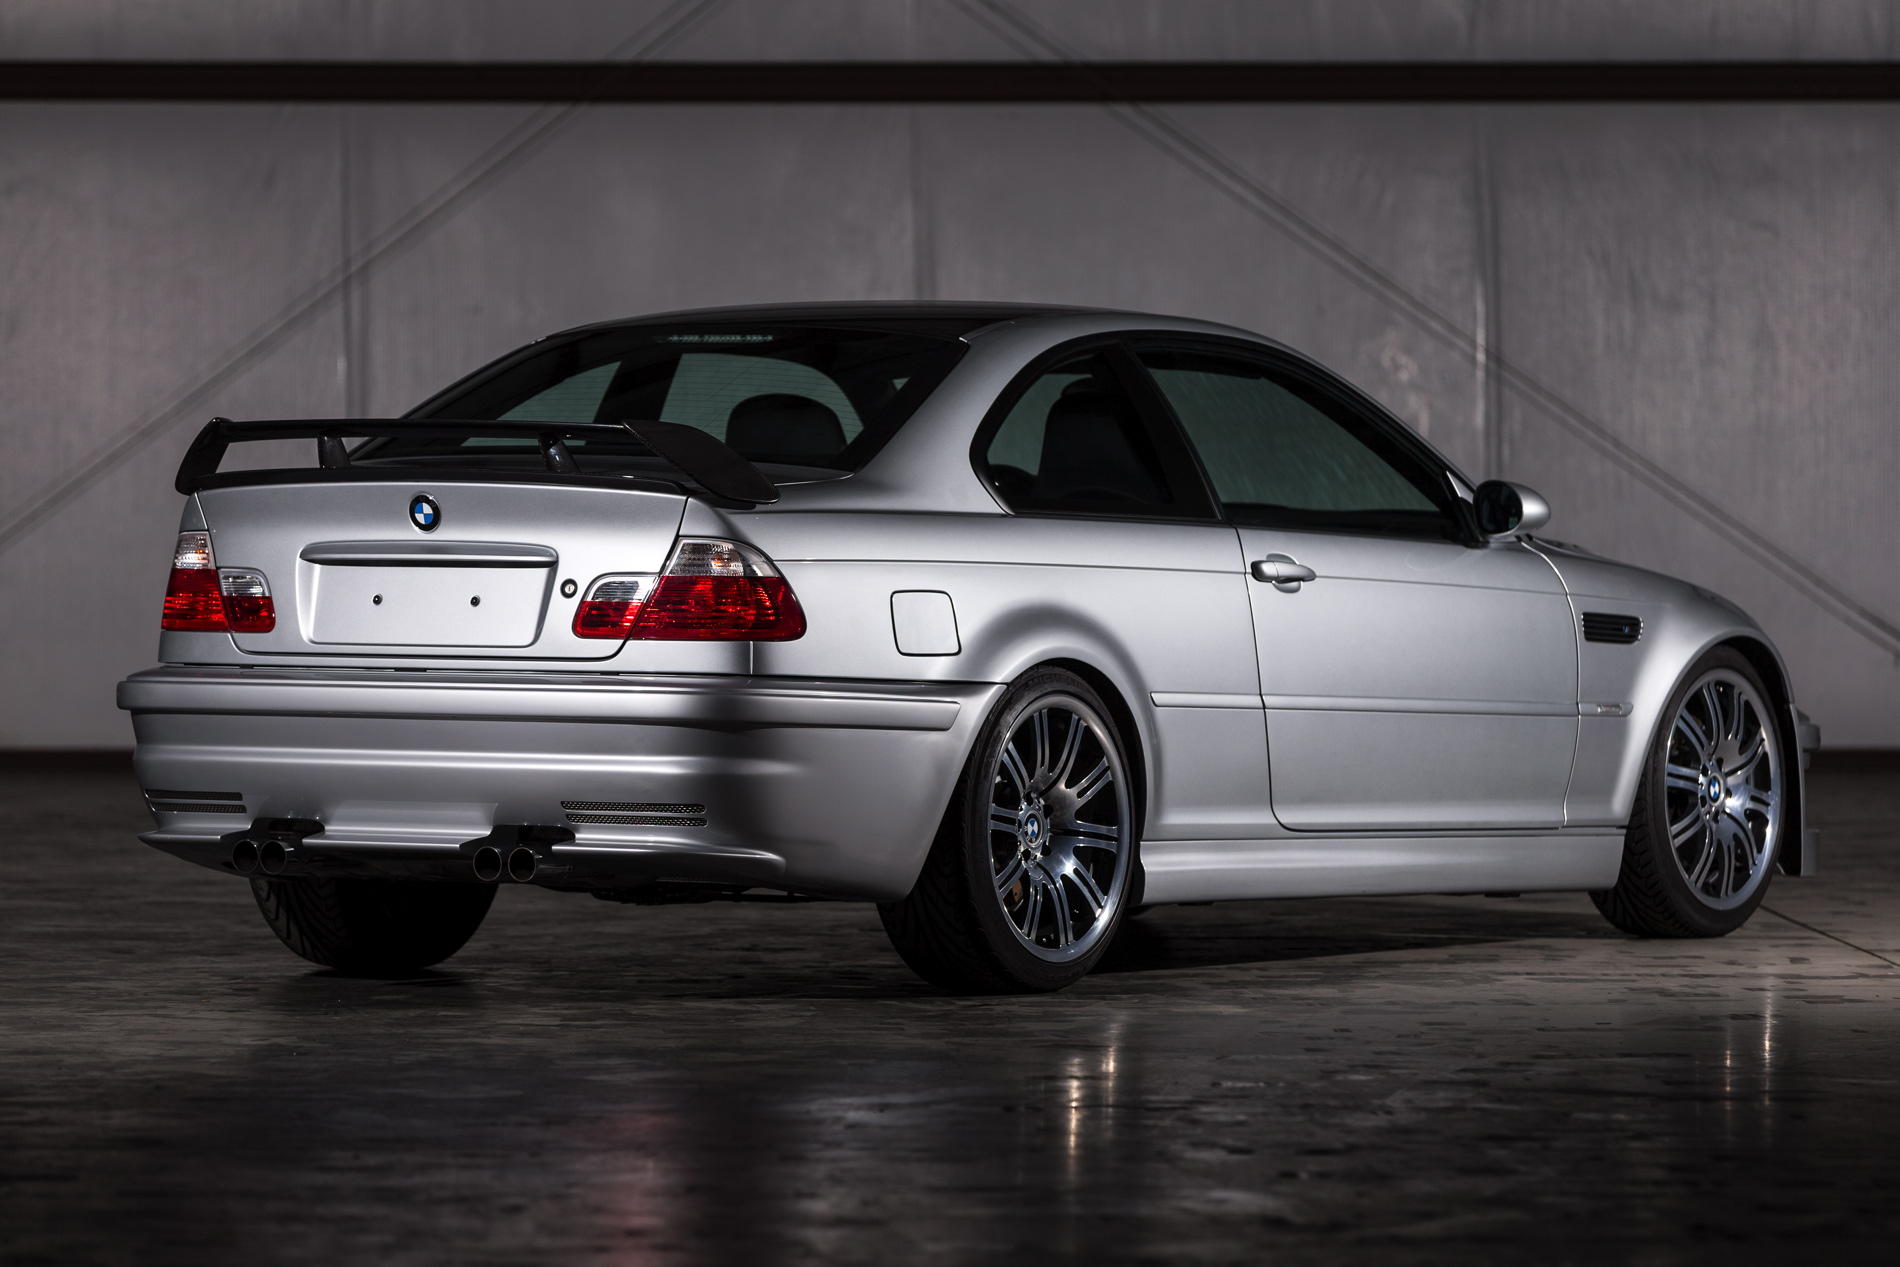 2001 Bmw M3 Gtr Race And Road Cars To Be Presented At Legends Of The